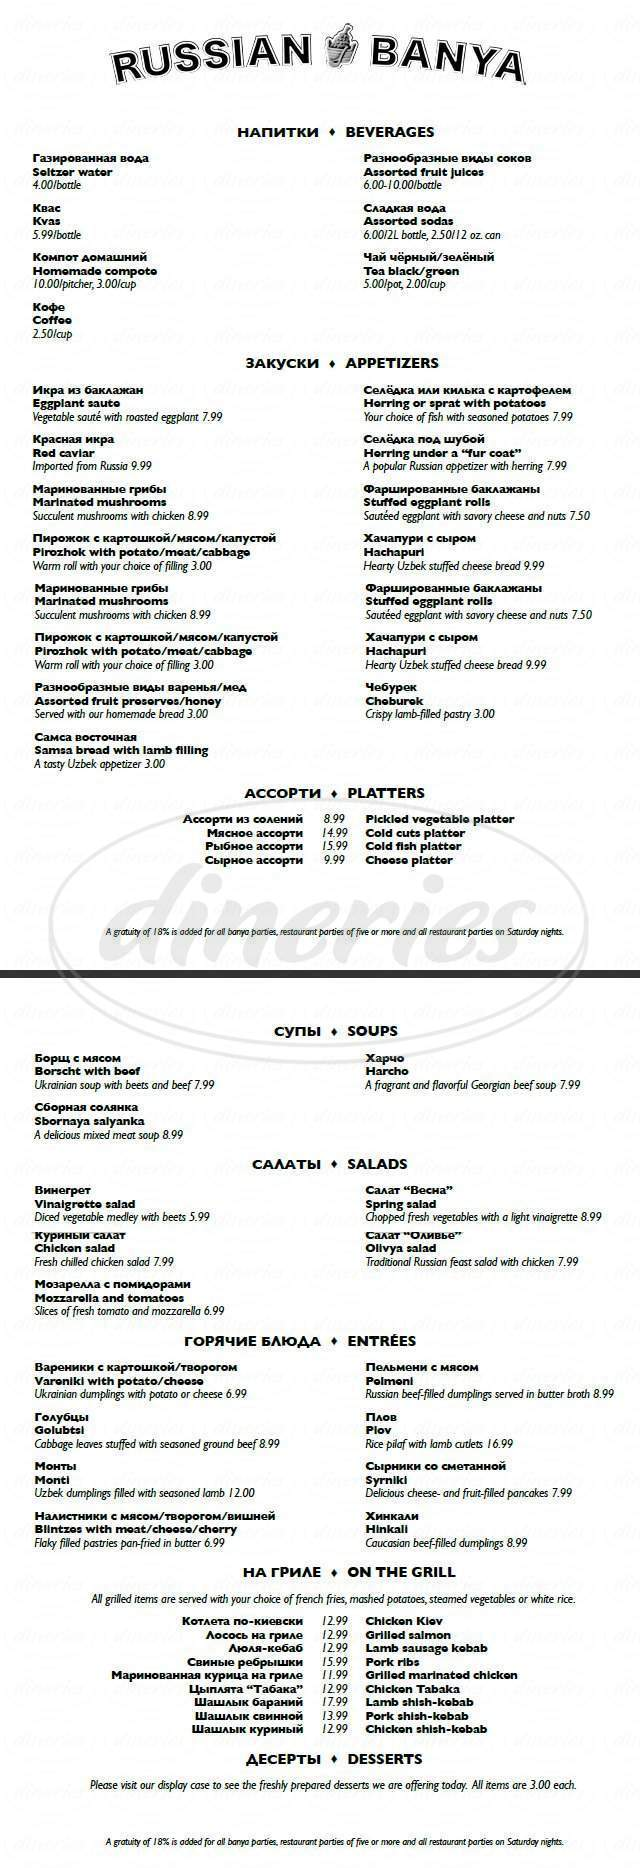 menu for Russian Banya